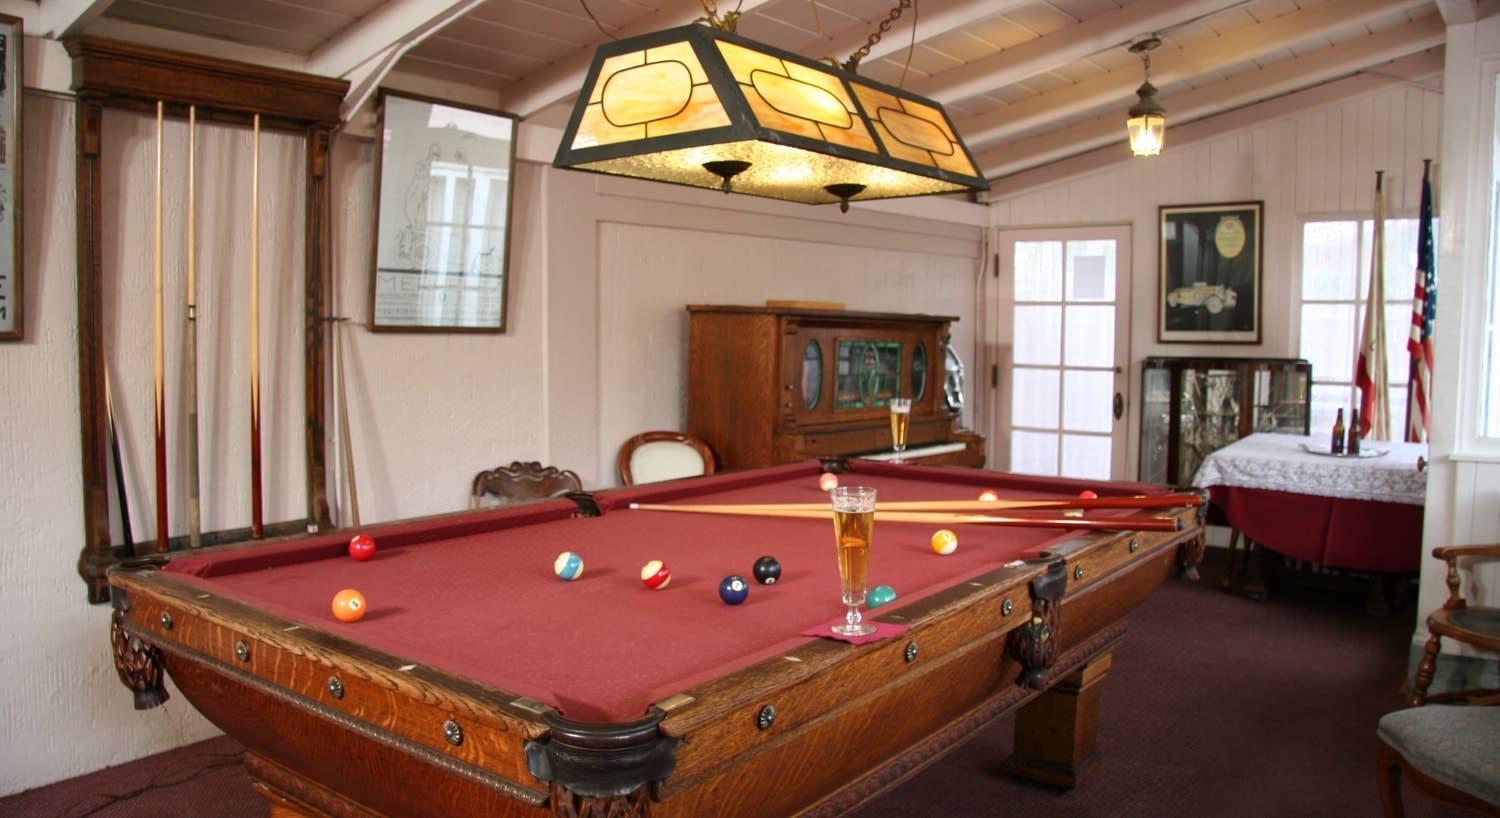 Common room with pool table with red felt and topped with balls and cue sticks, and several windows